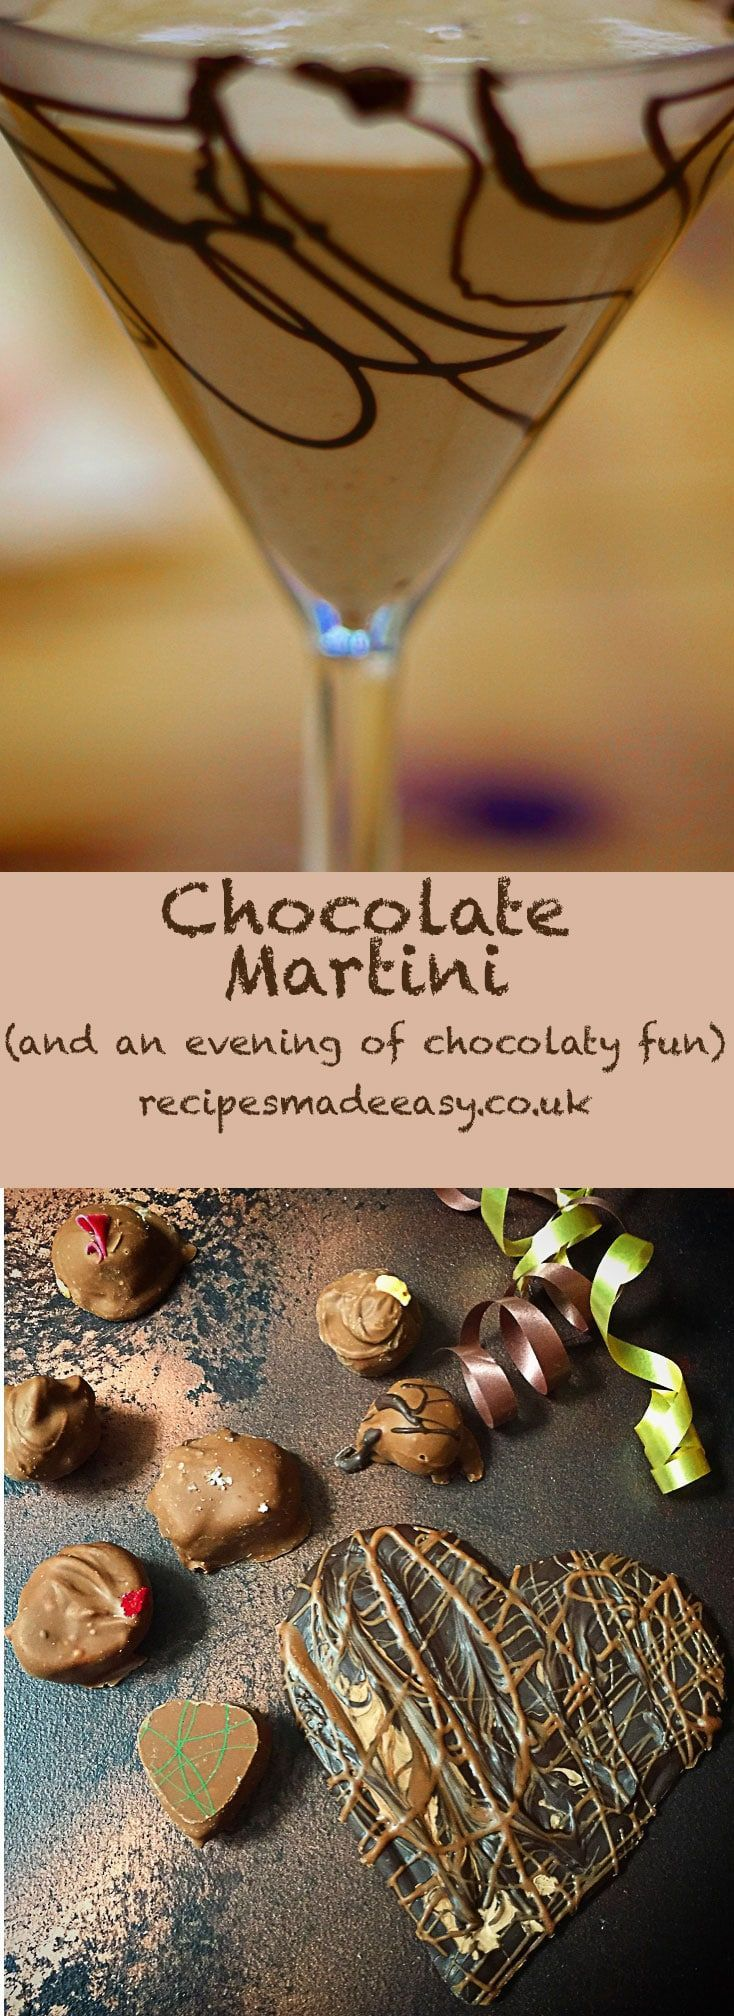 Chocolate Martini, prosecco and an evening of chocolaty fun with Red Letter Days. #chocolate #coctails #redletterdays via @jacdotbee